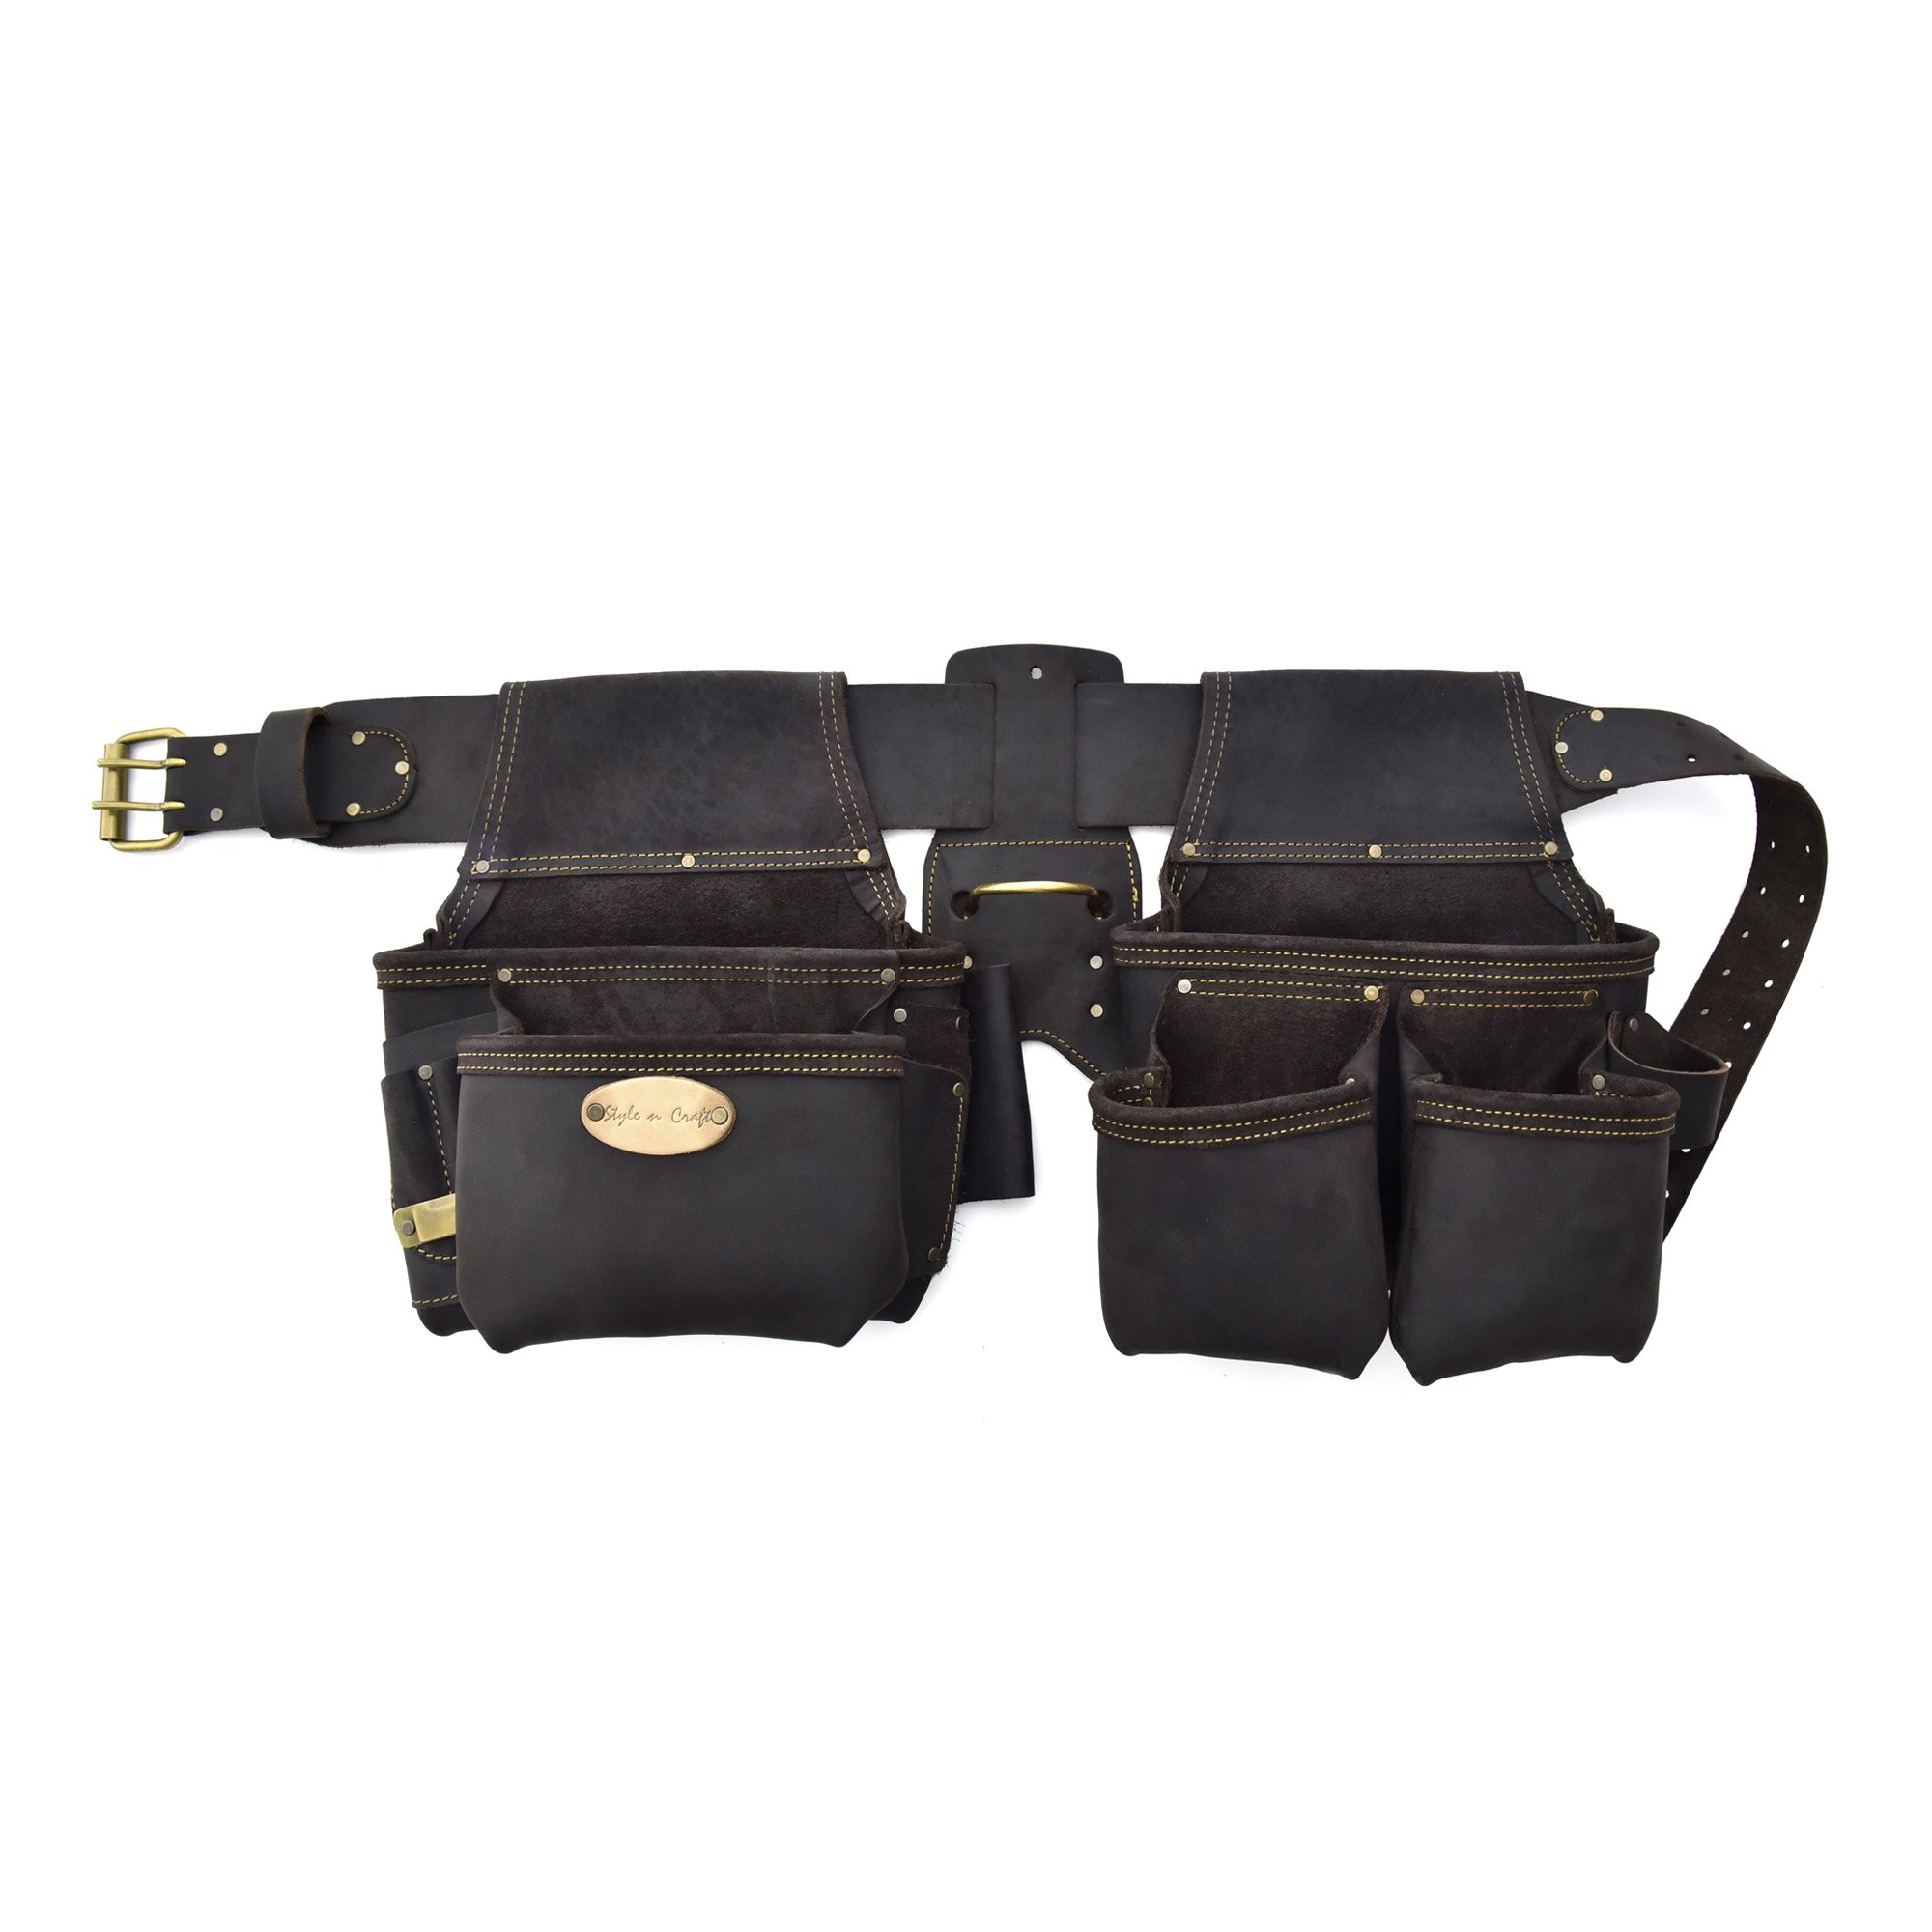 Style n Craft 90-429 4 Piece Framer's Combo in Heavy Duty Oiled Leather